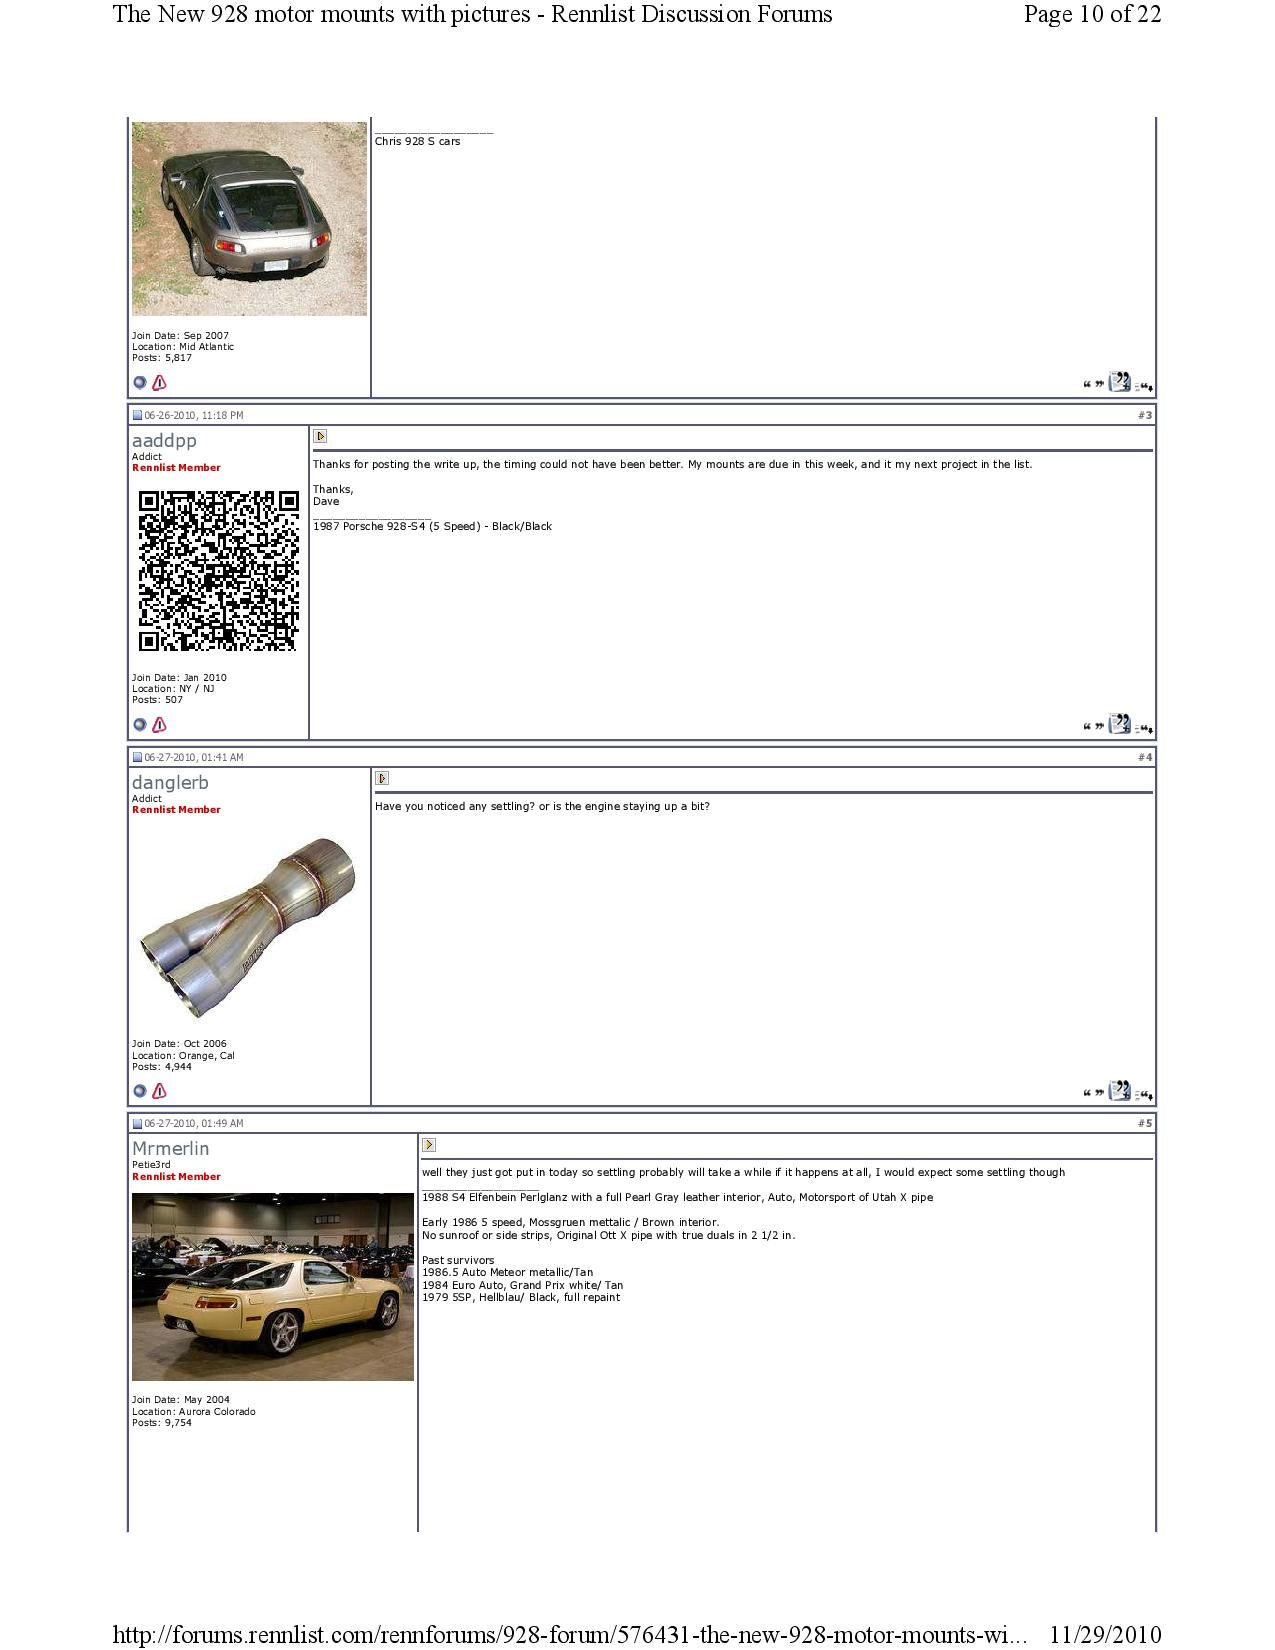 New 928 motor mounts with pictures pg10